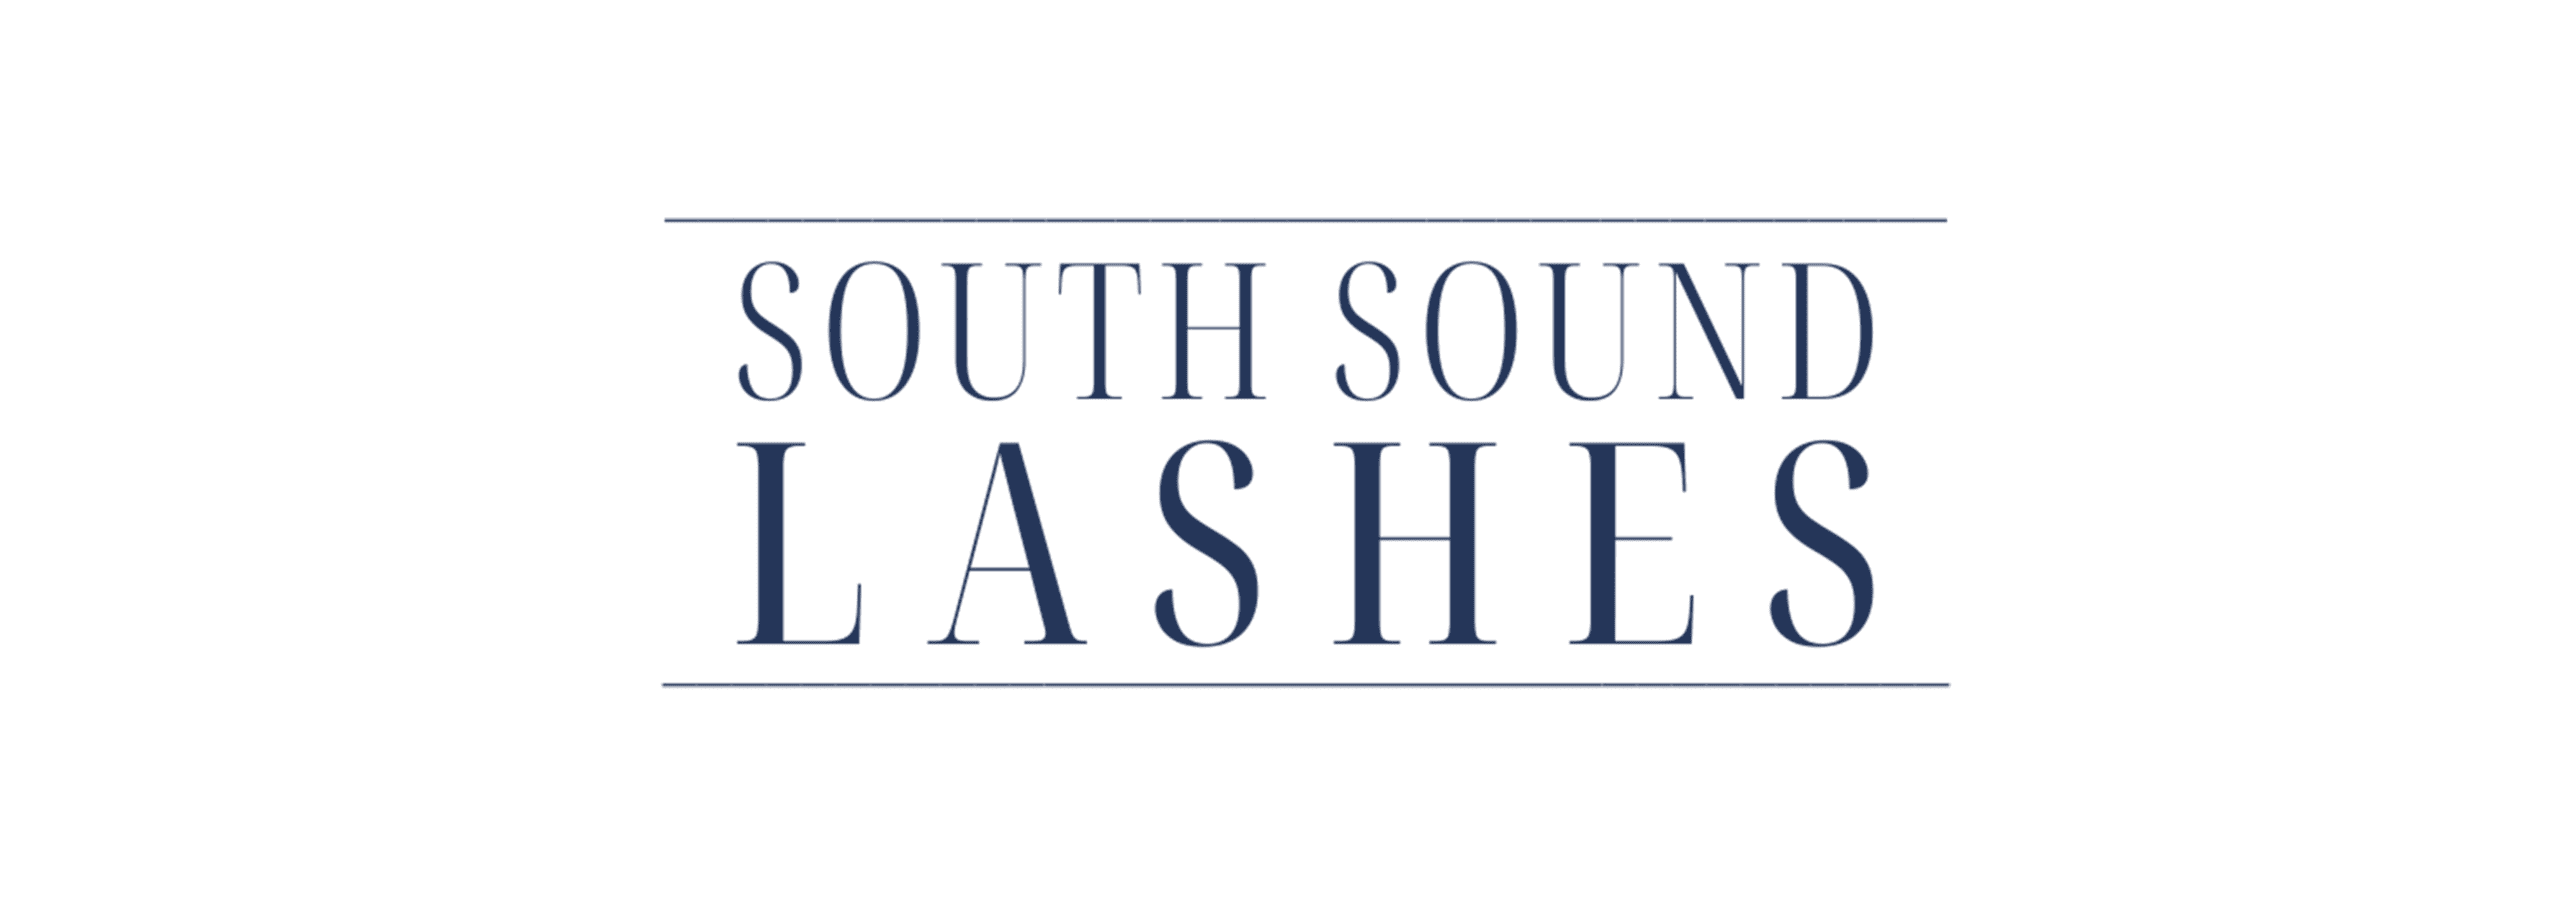 South Sound Lashes